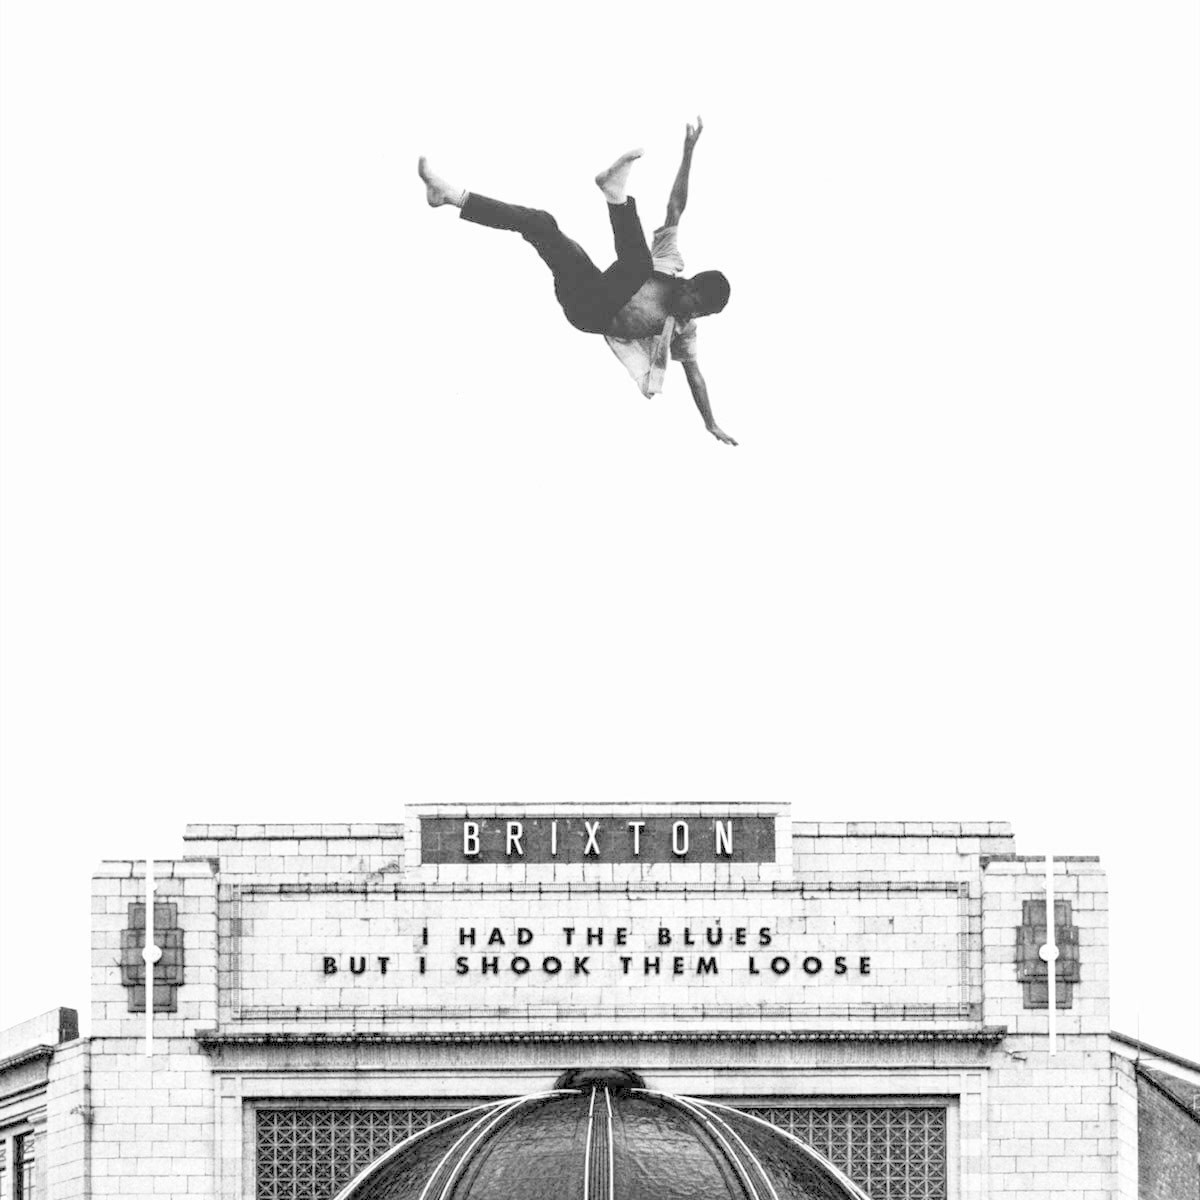 Bombay Bicycle Club – I Had The Blues But I Shook Them Loose (Live At Brixton)